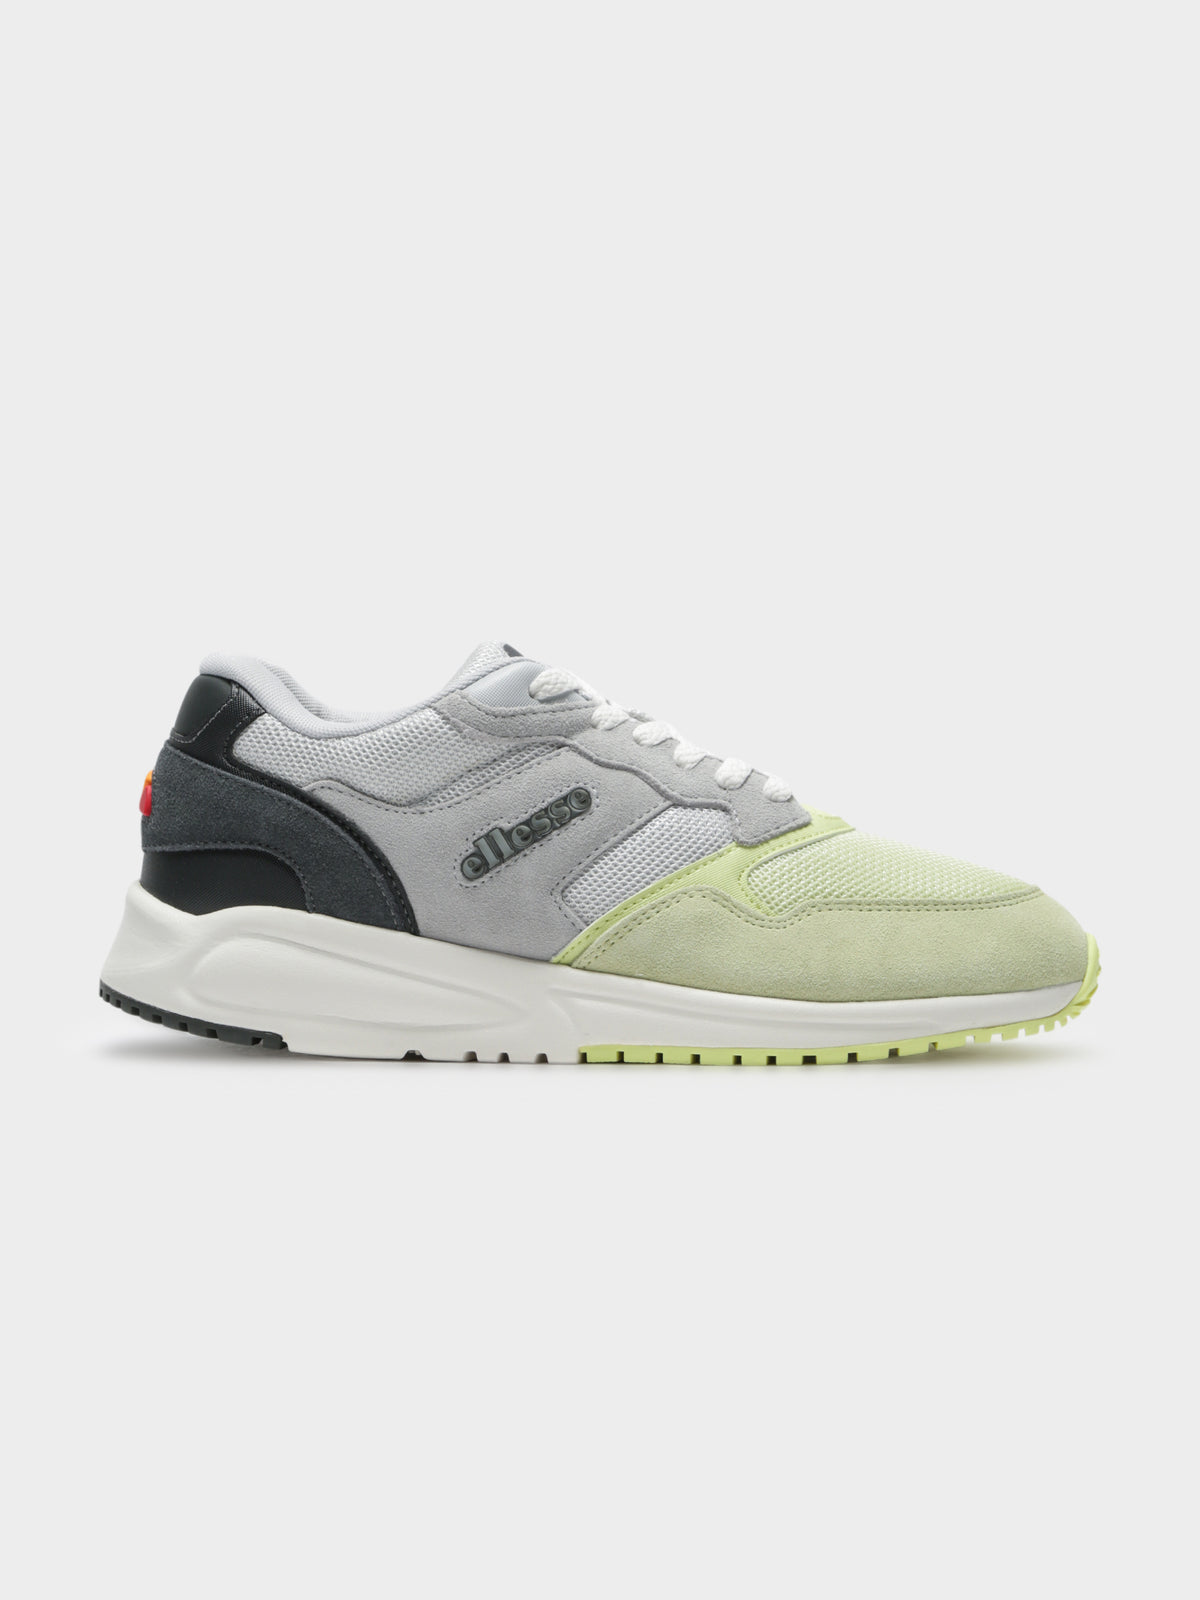 Womens NYC84 Sneakers in Grey & Green